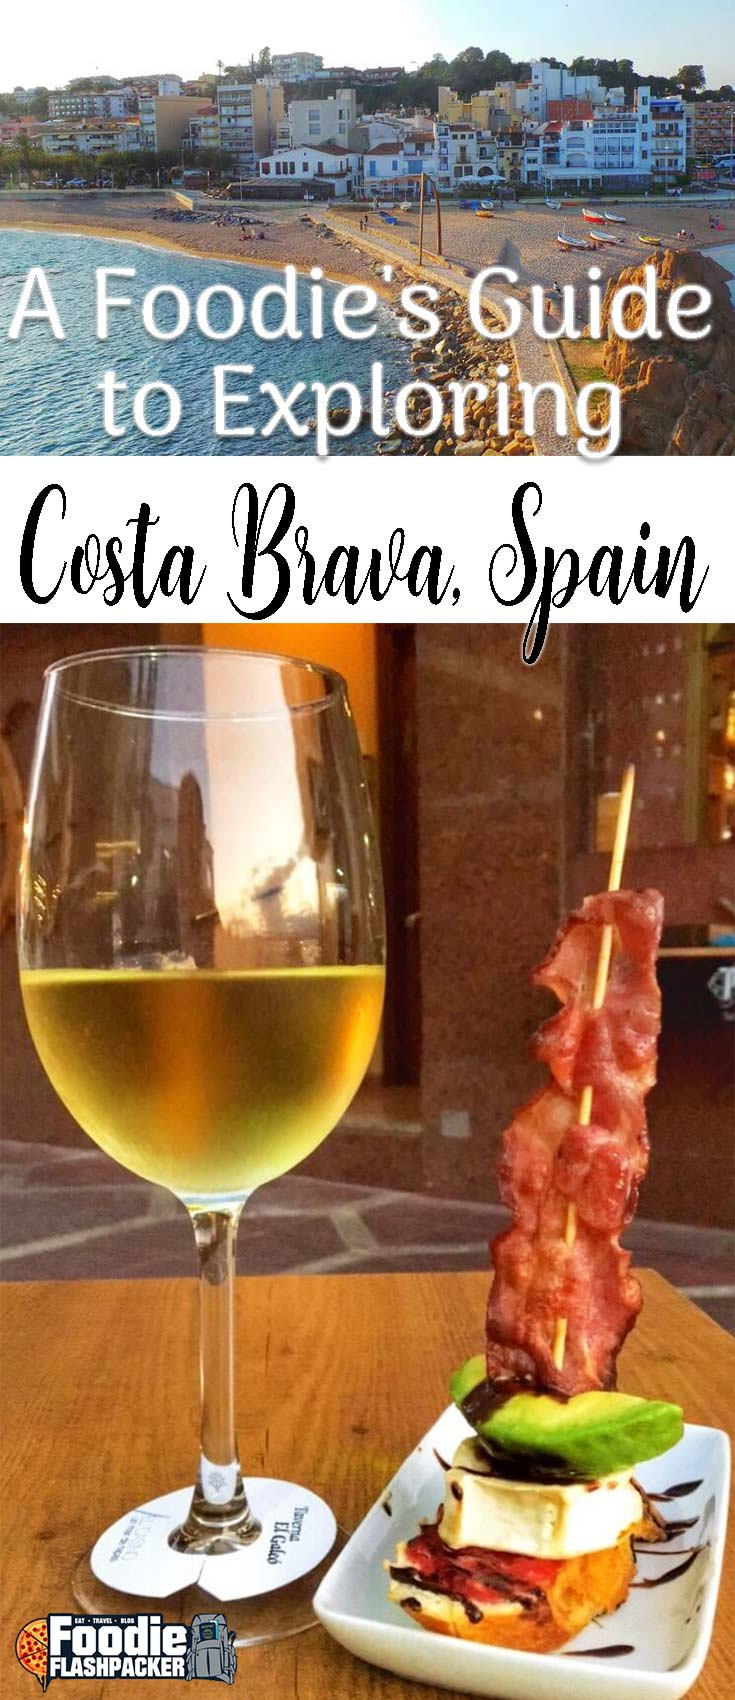 Check out this foodie roadtrip travel guide to exploring the region of Costa Brava in Spain.